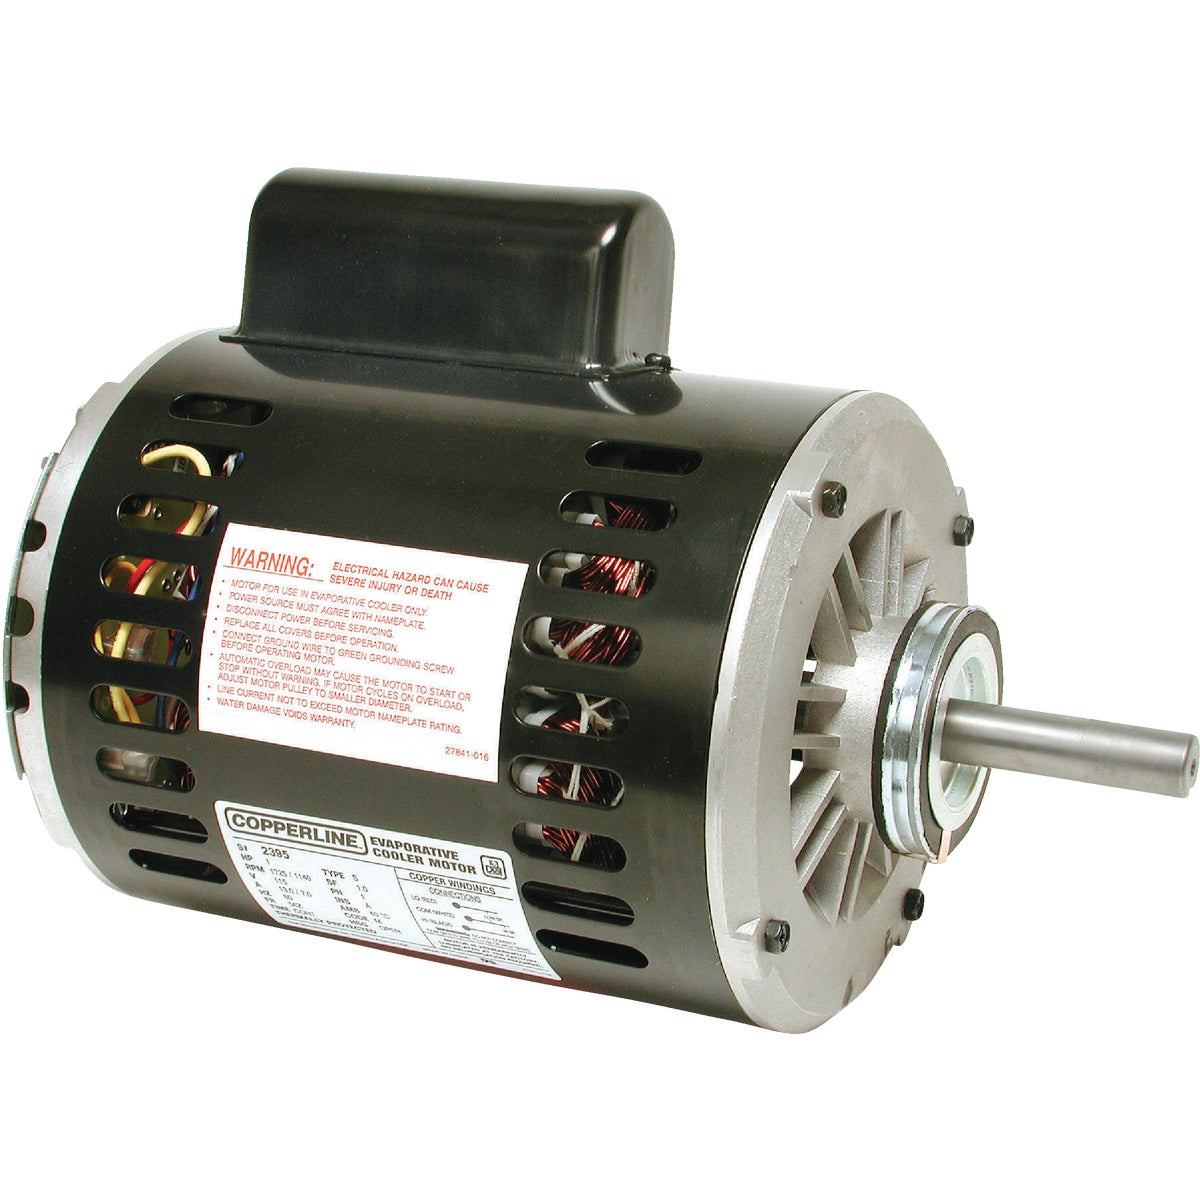 1 HP 2 SPEED MOTOR 115V